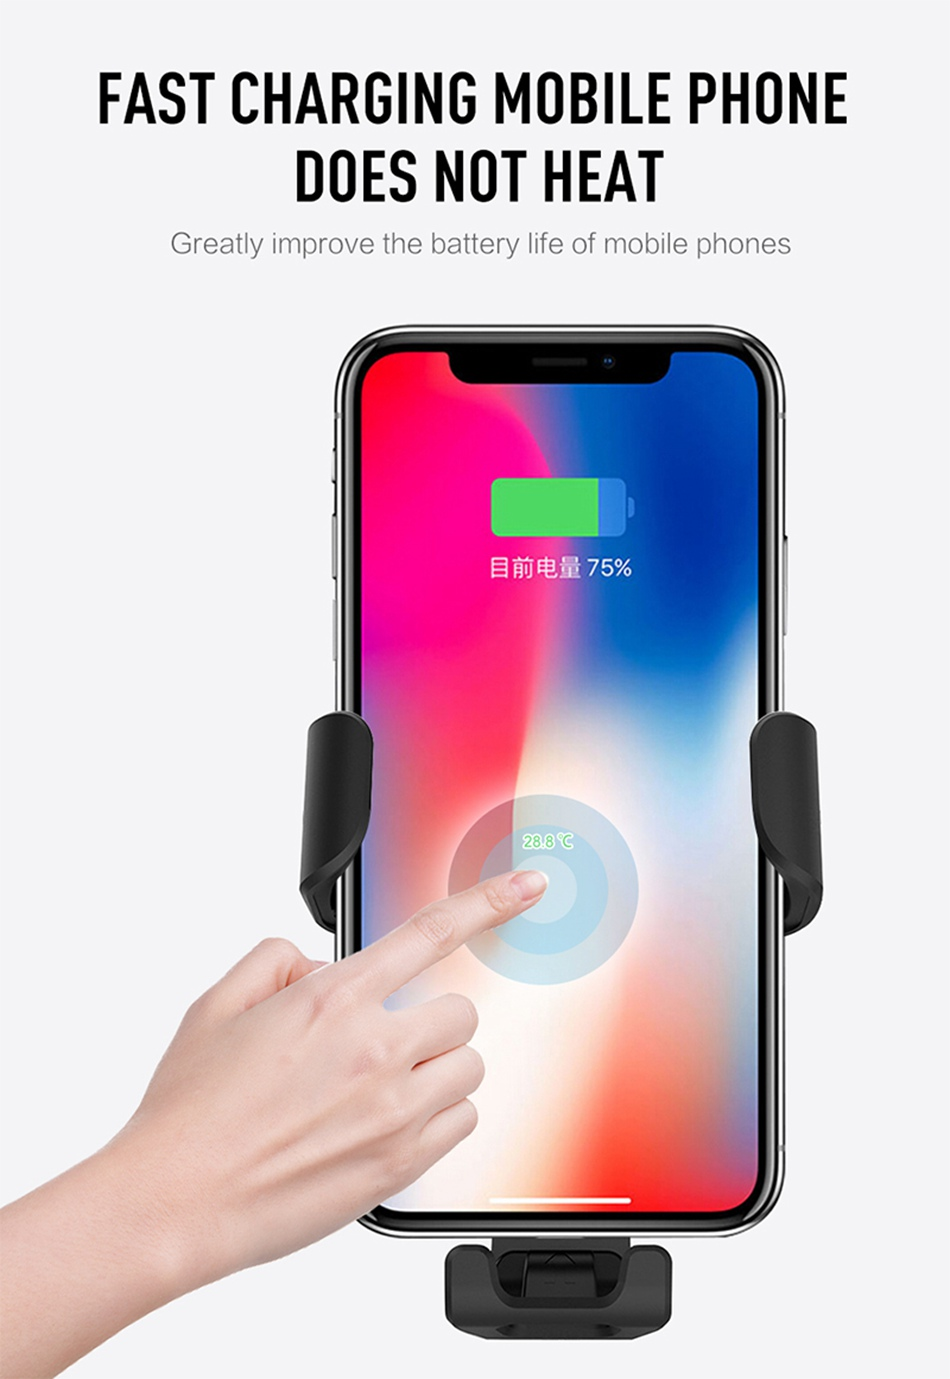 HTB1iudJLAPoK1RjSZKbq6x1IXXap KISSCASE Gravity Car Wireless Charger For iPhone 8 Plus XR XS Max X Qi Fast Wireless Car Charger For Samsung Galaxy S10 Plus S10